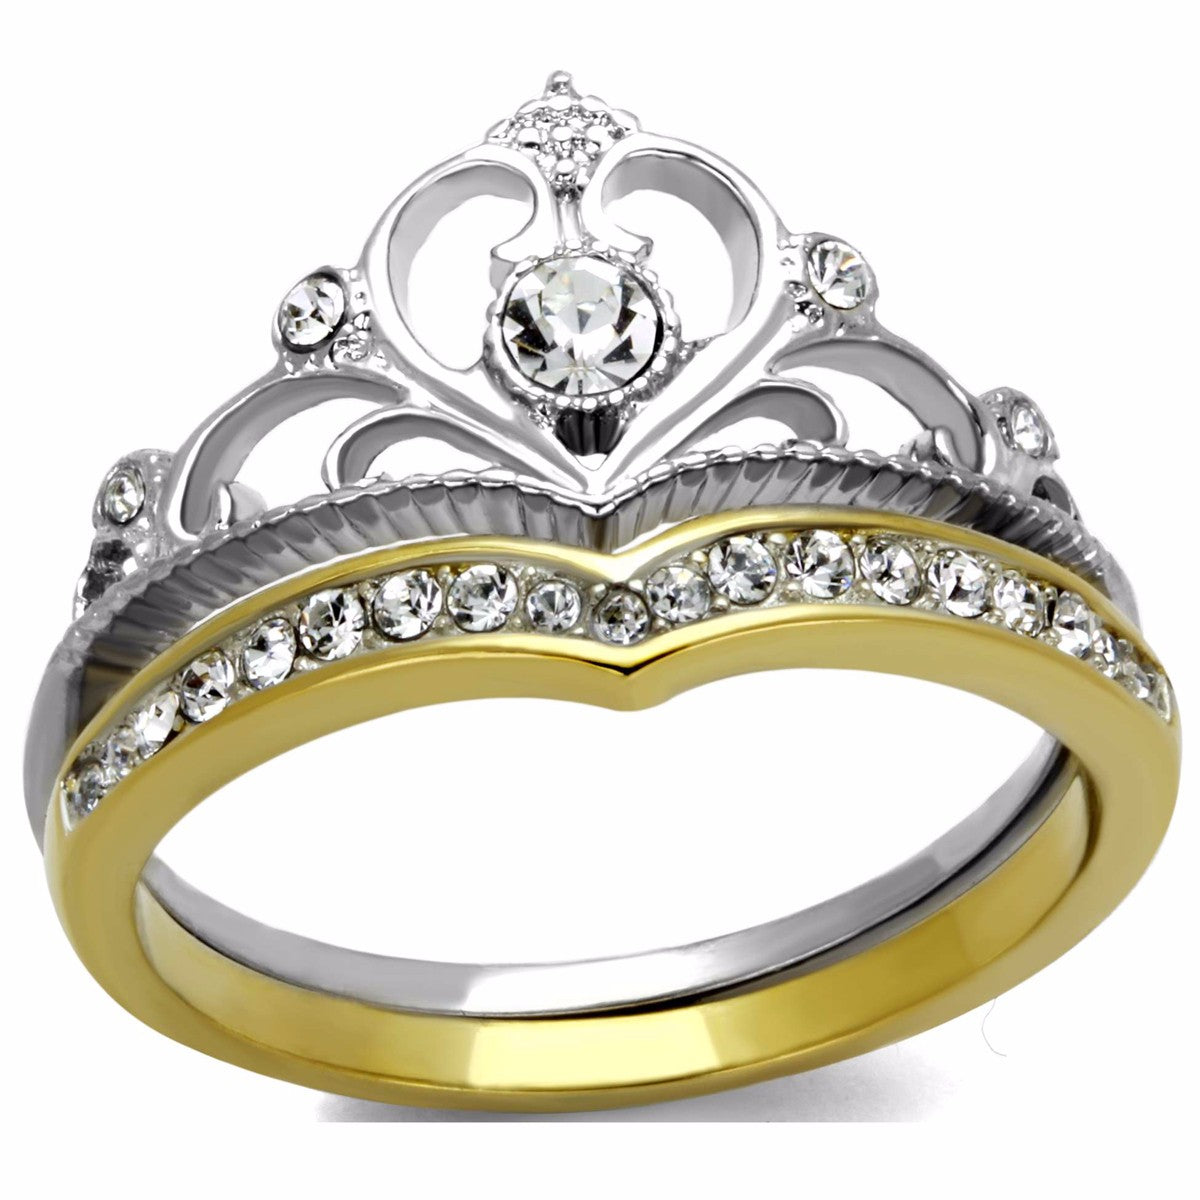 Womens 3.5x3.5mm Round CZ Two-Tone Gold IP Stainless Steel Crown 2 Ring Set - LA NY Jewelry